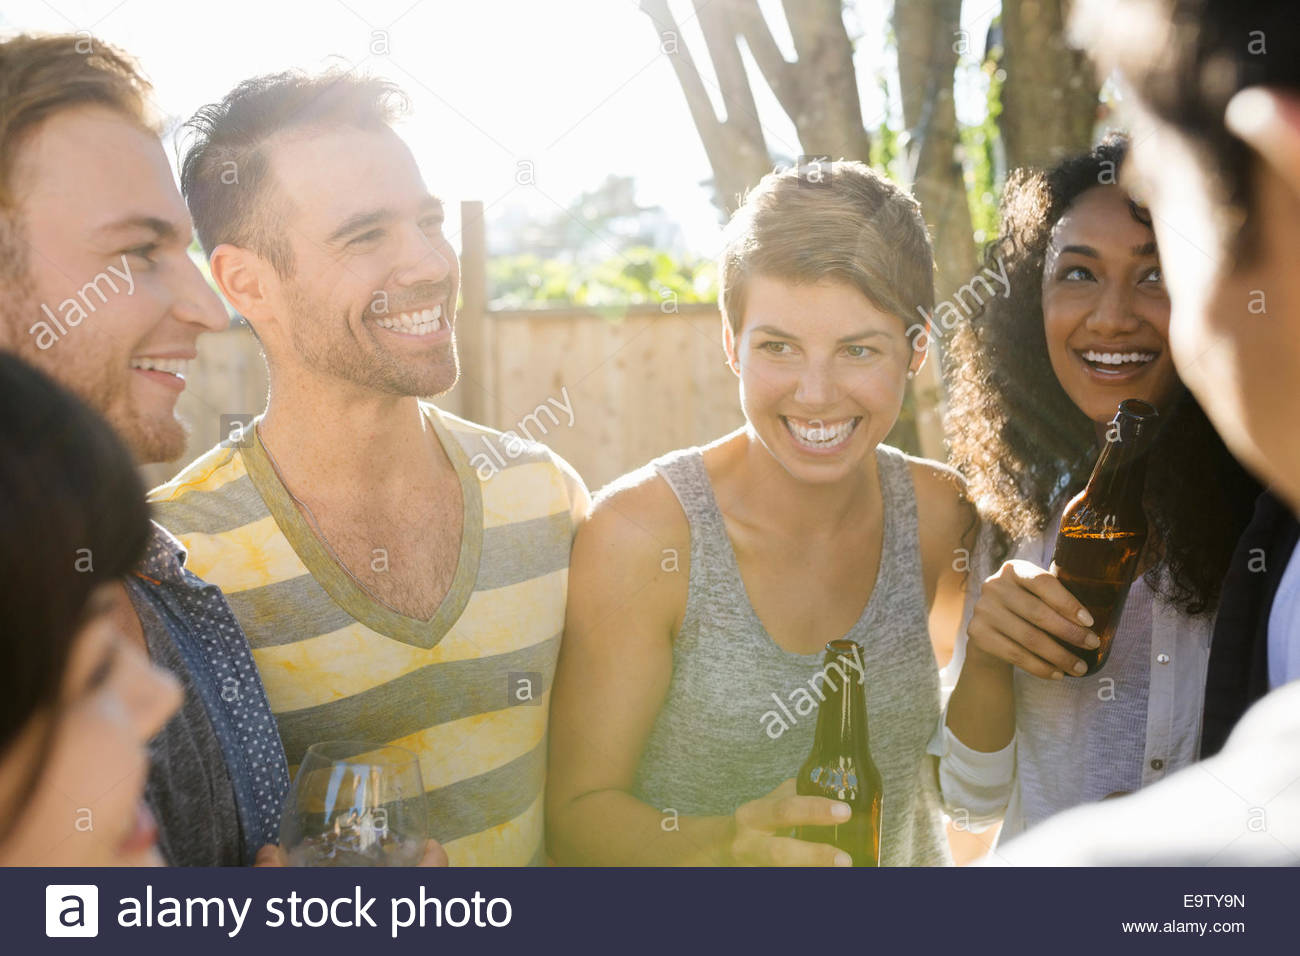 Friends drinking and hanging out at backyard barbecue - Stock Image